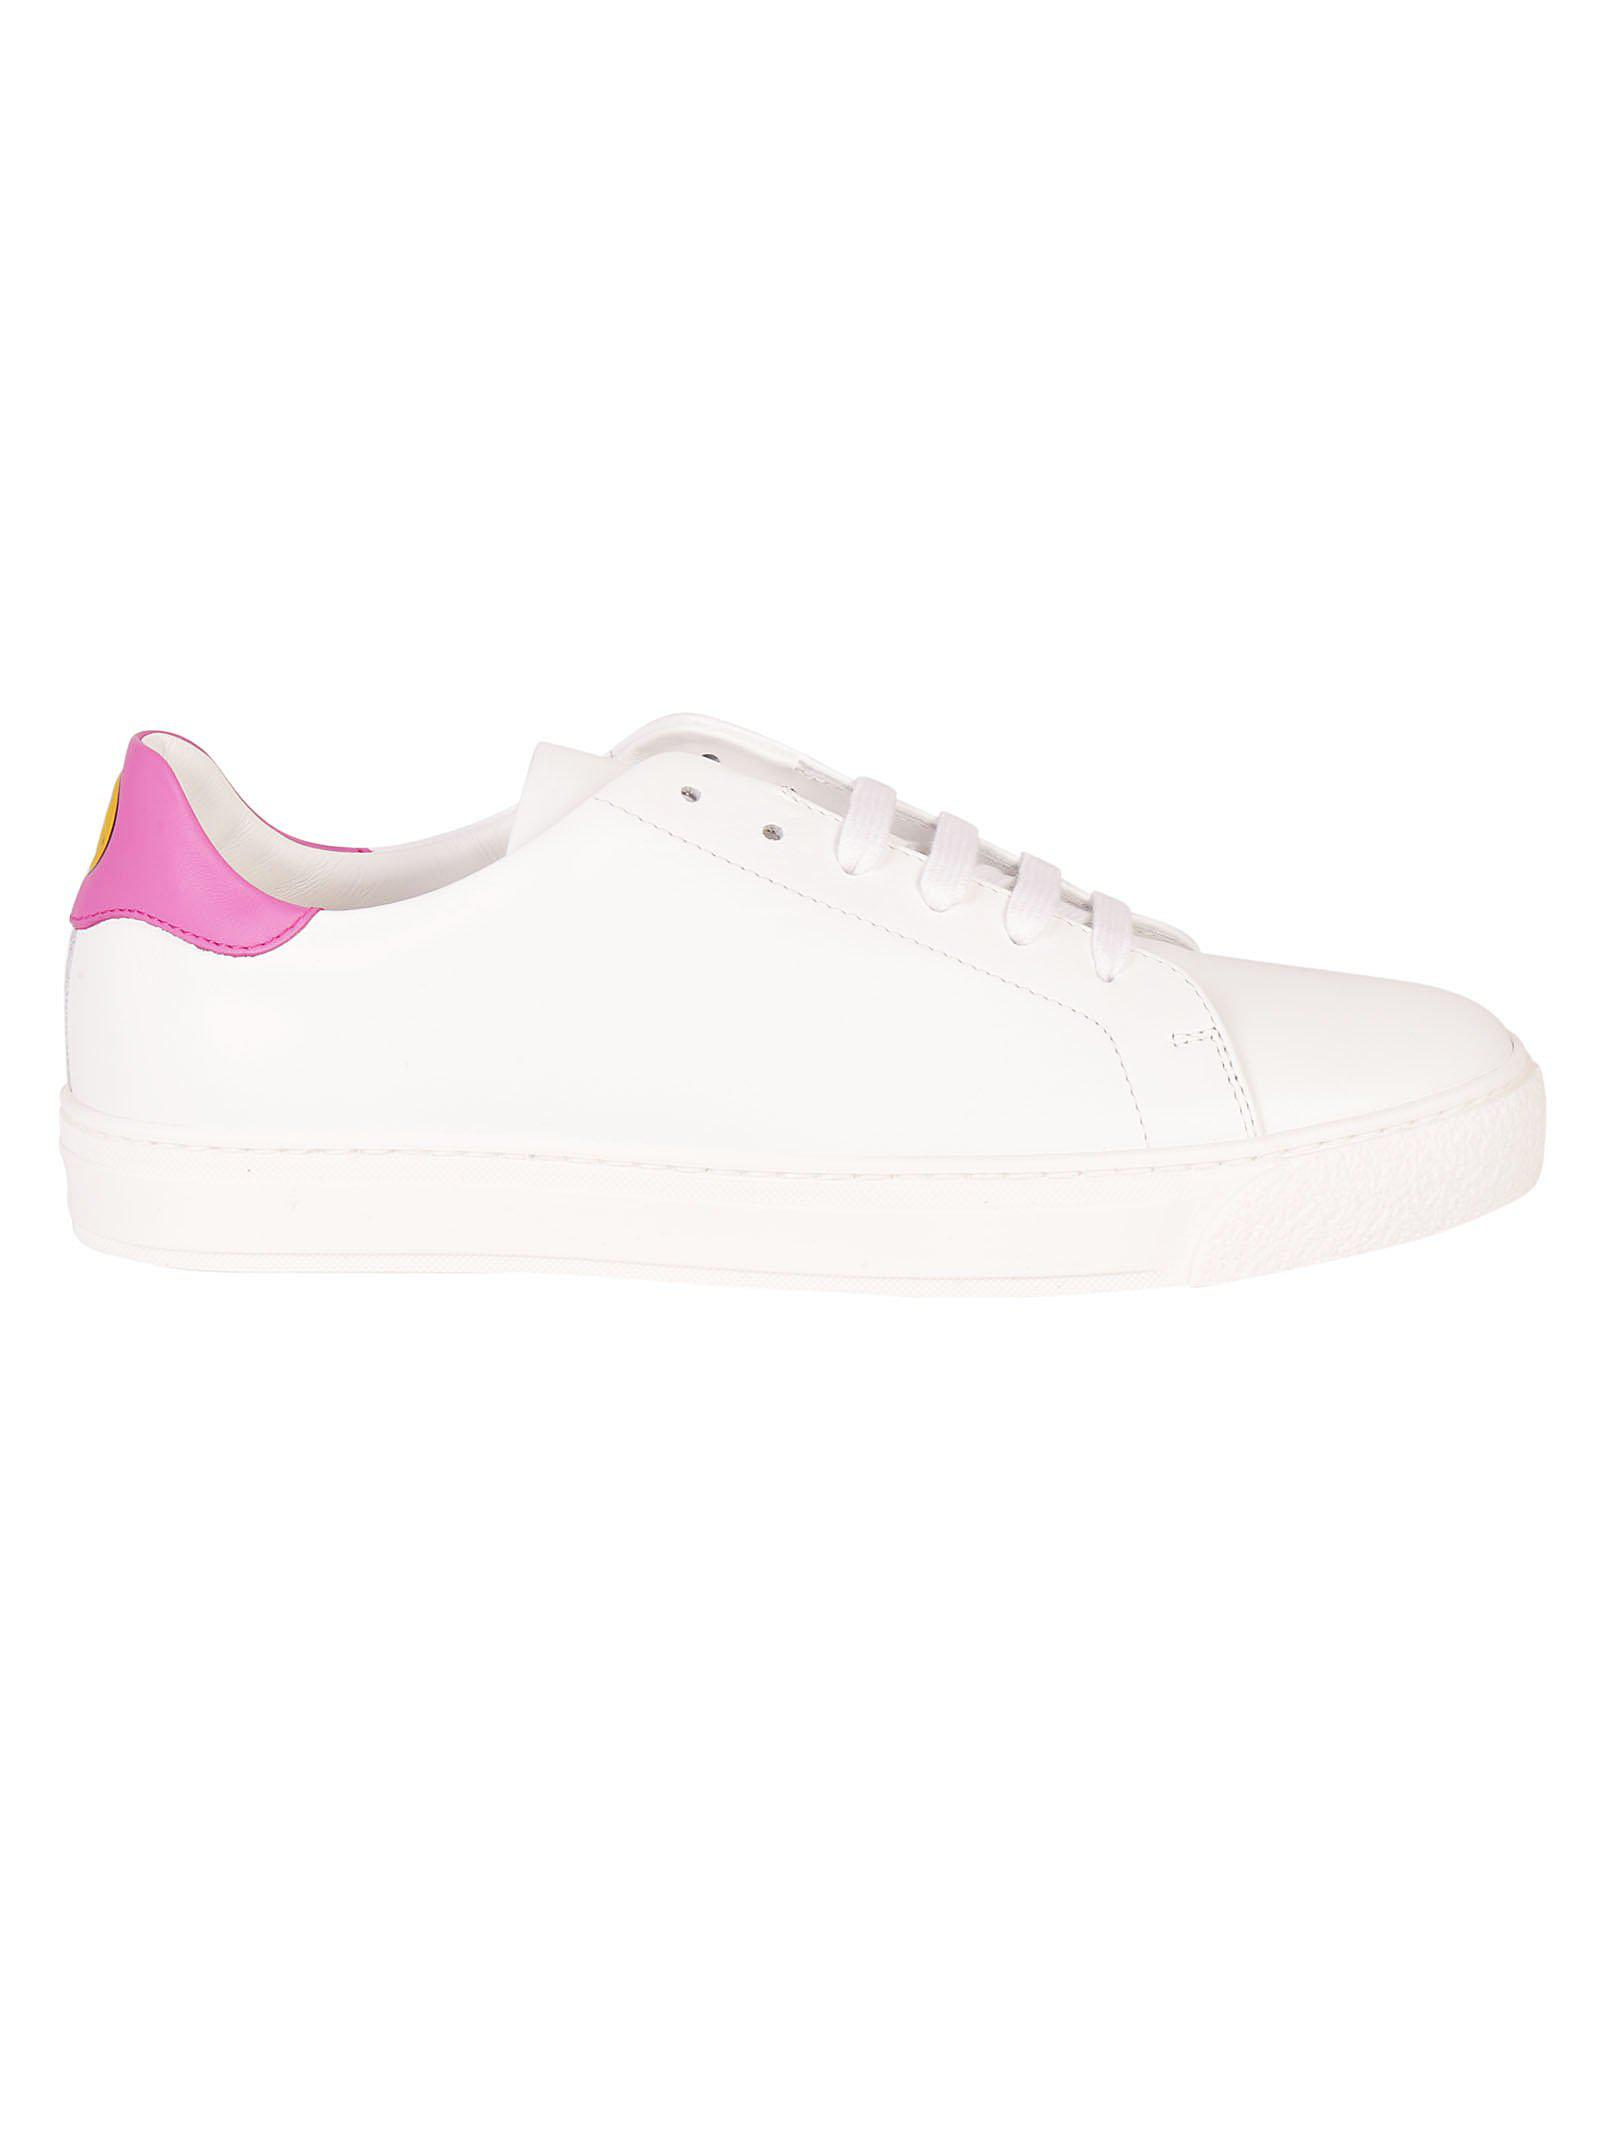 online store d0a15 d7dbe anya-hindmarch-White-Smiley-Low-Top-Sneakers.jpeg